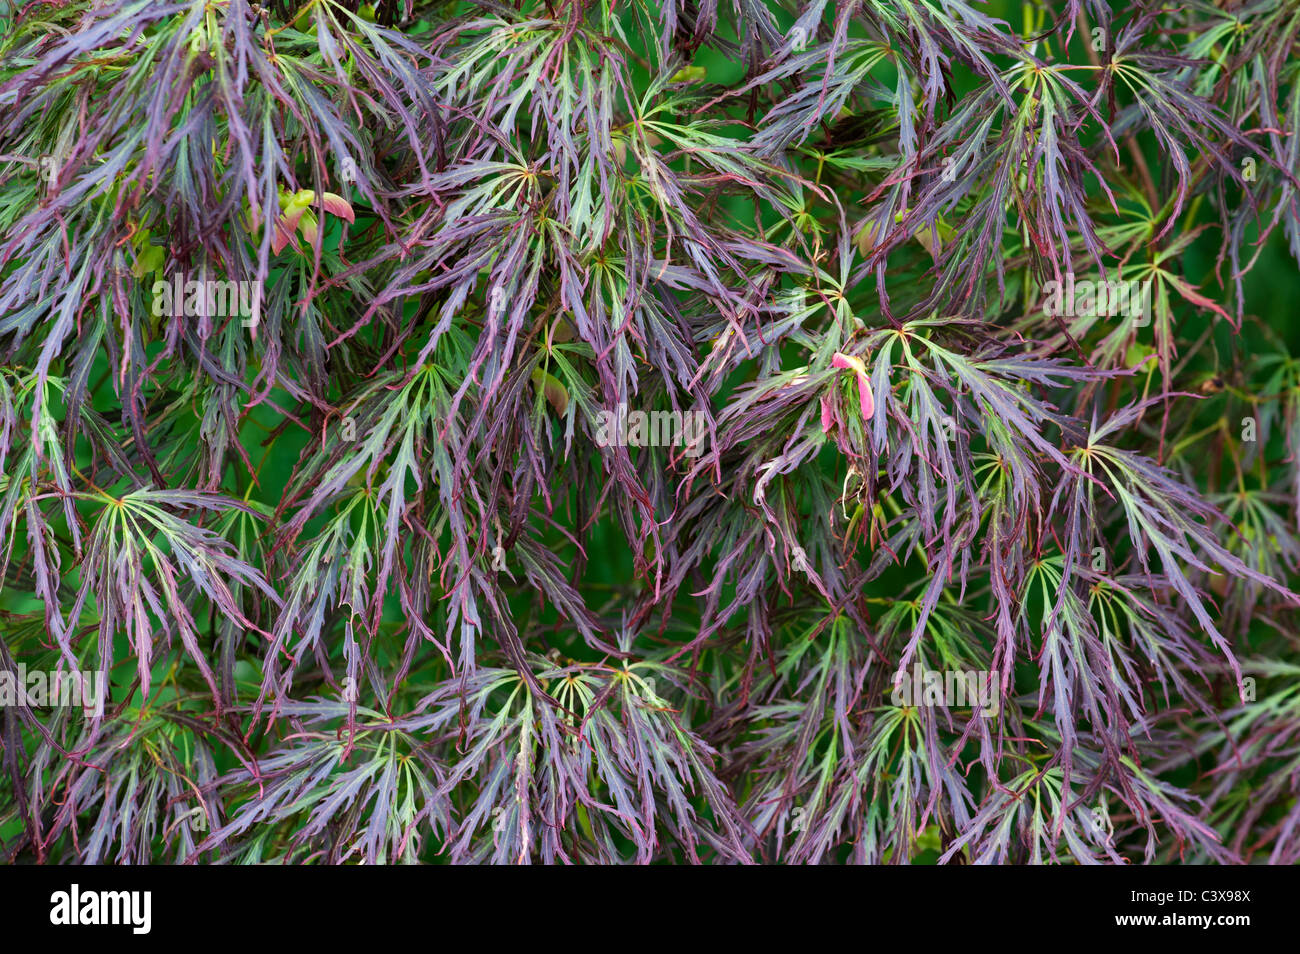 Acer Palmatum Var Dissectum Smooth Japanese Maple Tree Leaves And